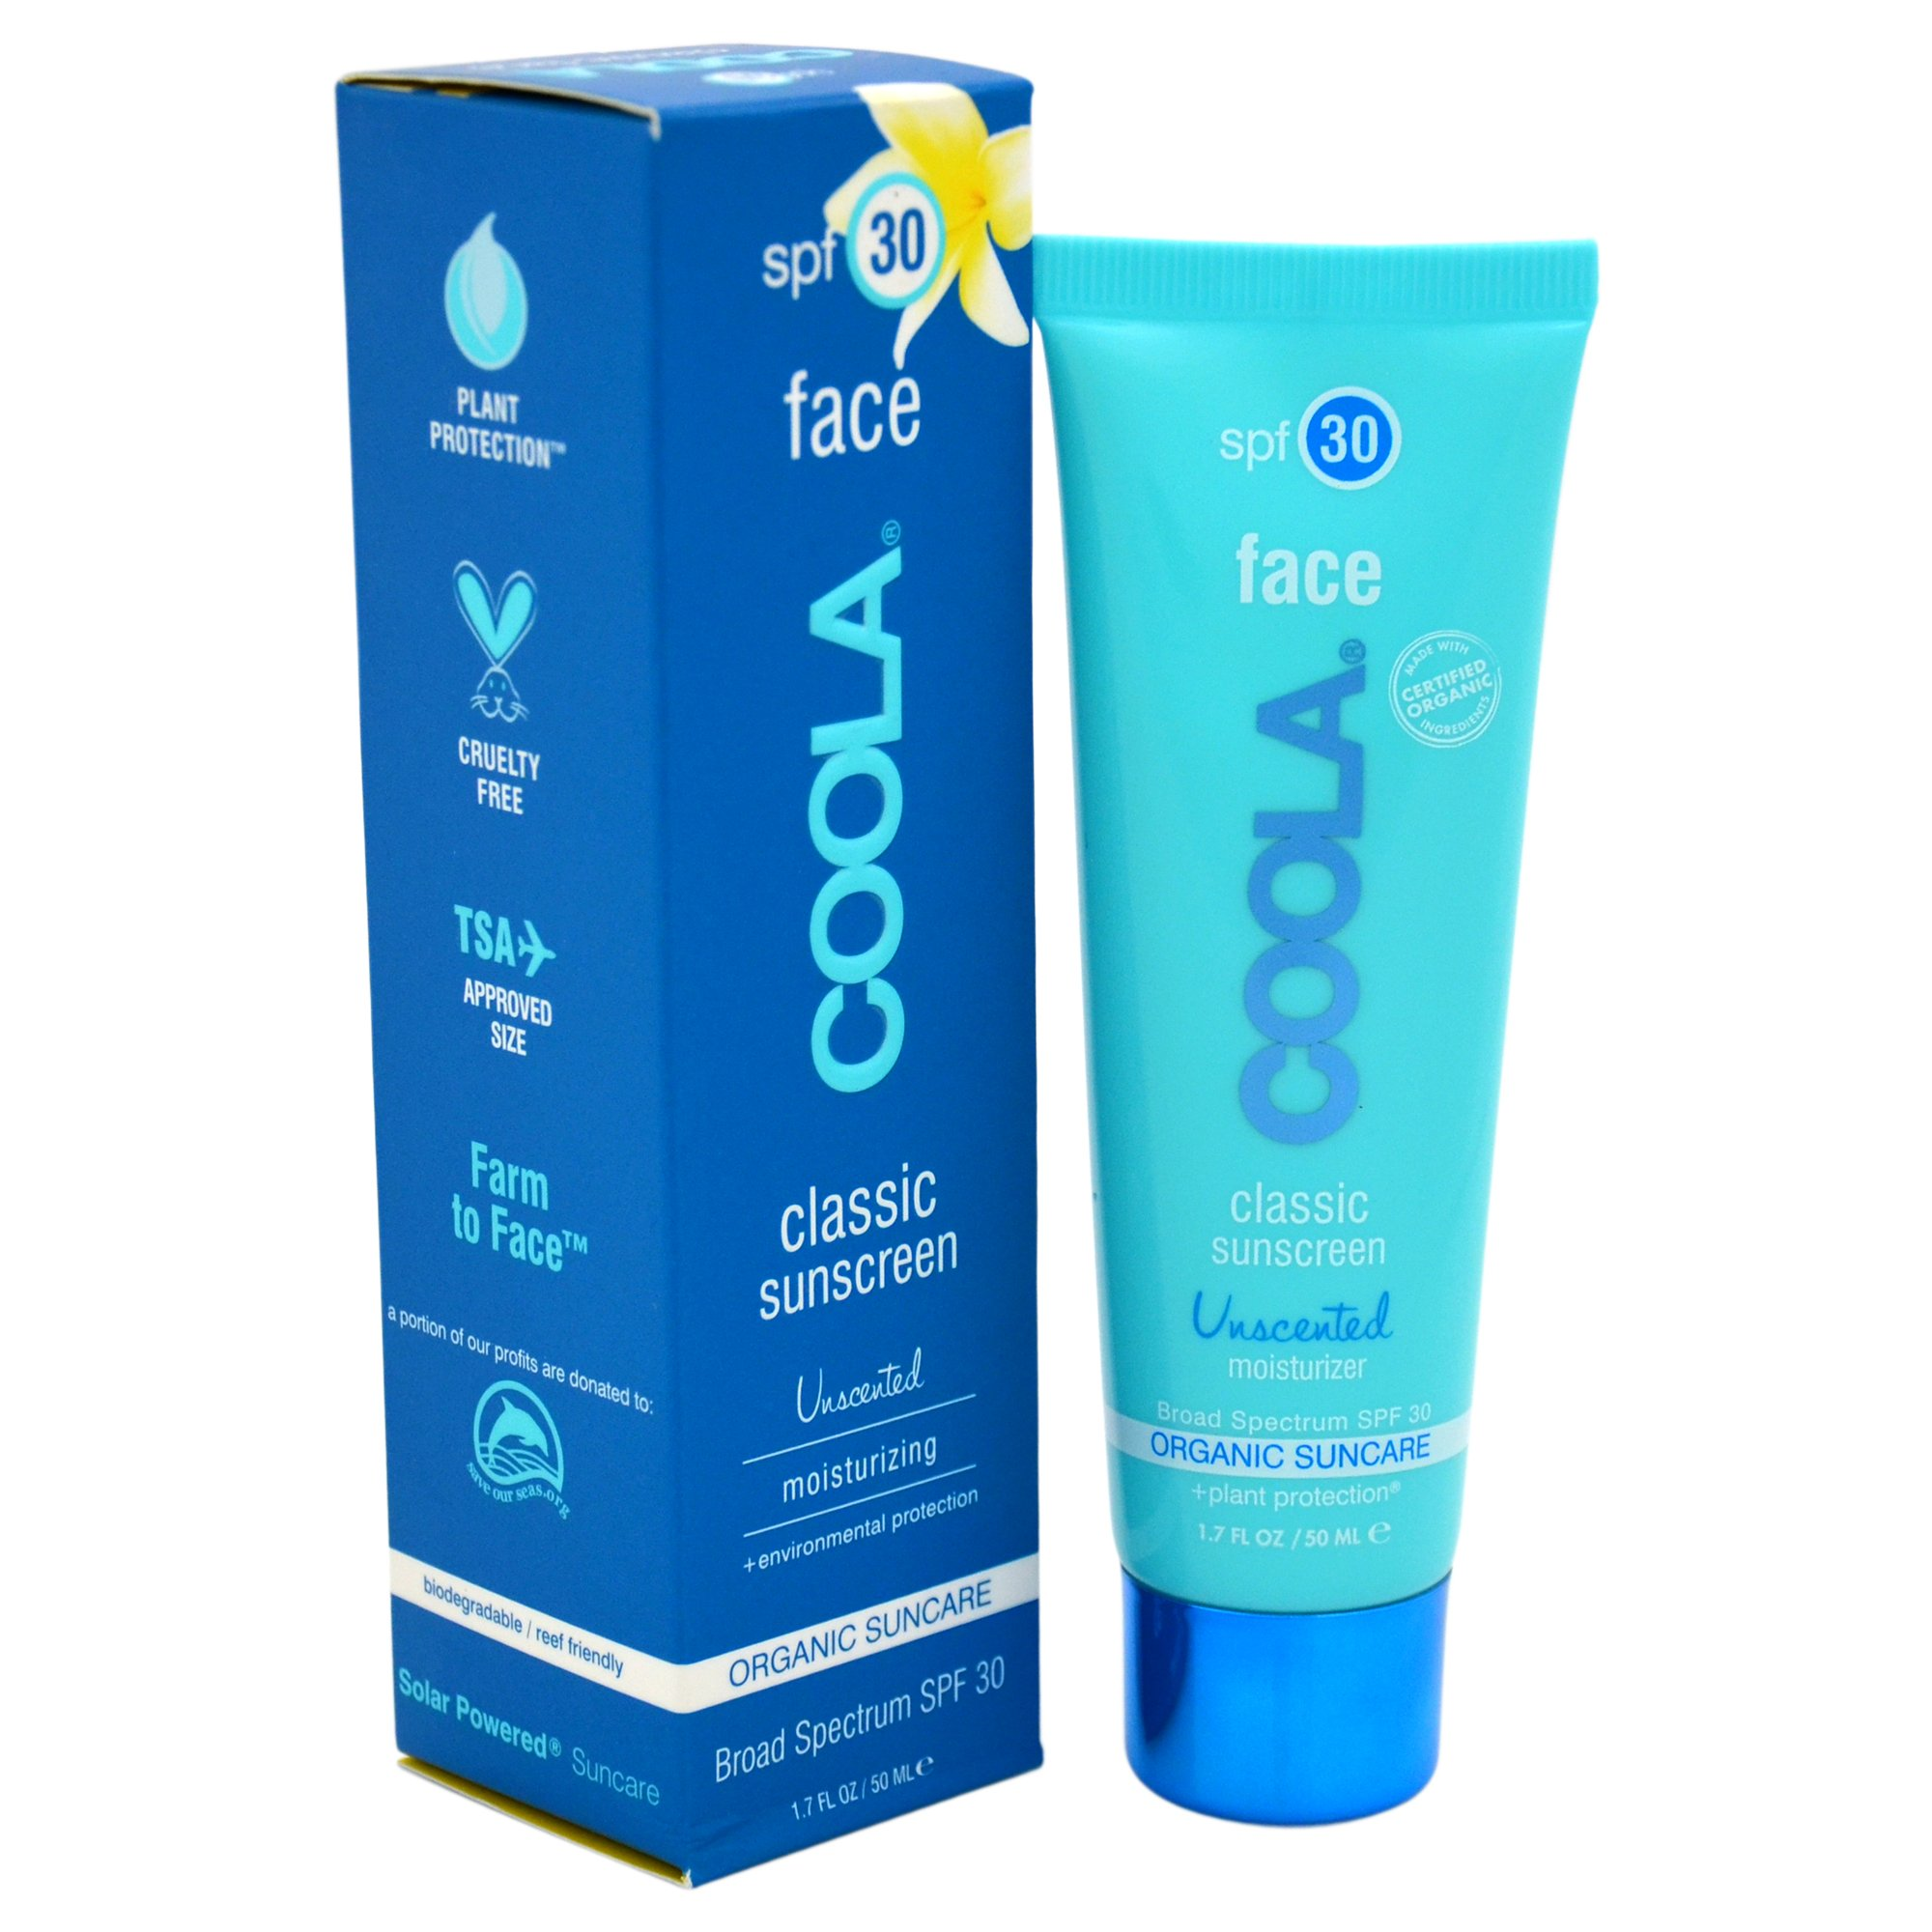 COOLA Organic Classic Unsented Daily Face Sunscreen|Broad Spectrum SPF 30|Daytime Lotion +Sunscreen All-In-One|Sheer Finish|Lightweight|Water Resistant|Reef Friendly|TSA Approved Travel Size by Coola Suncare